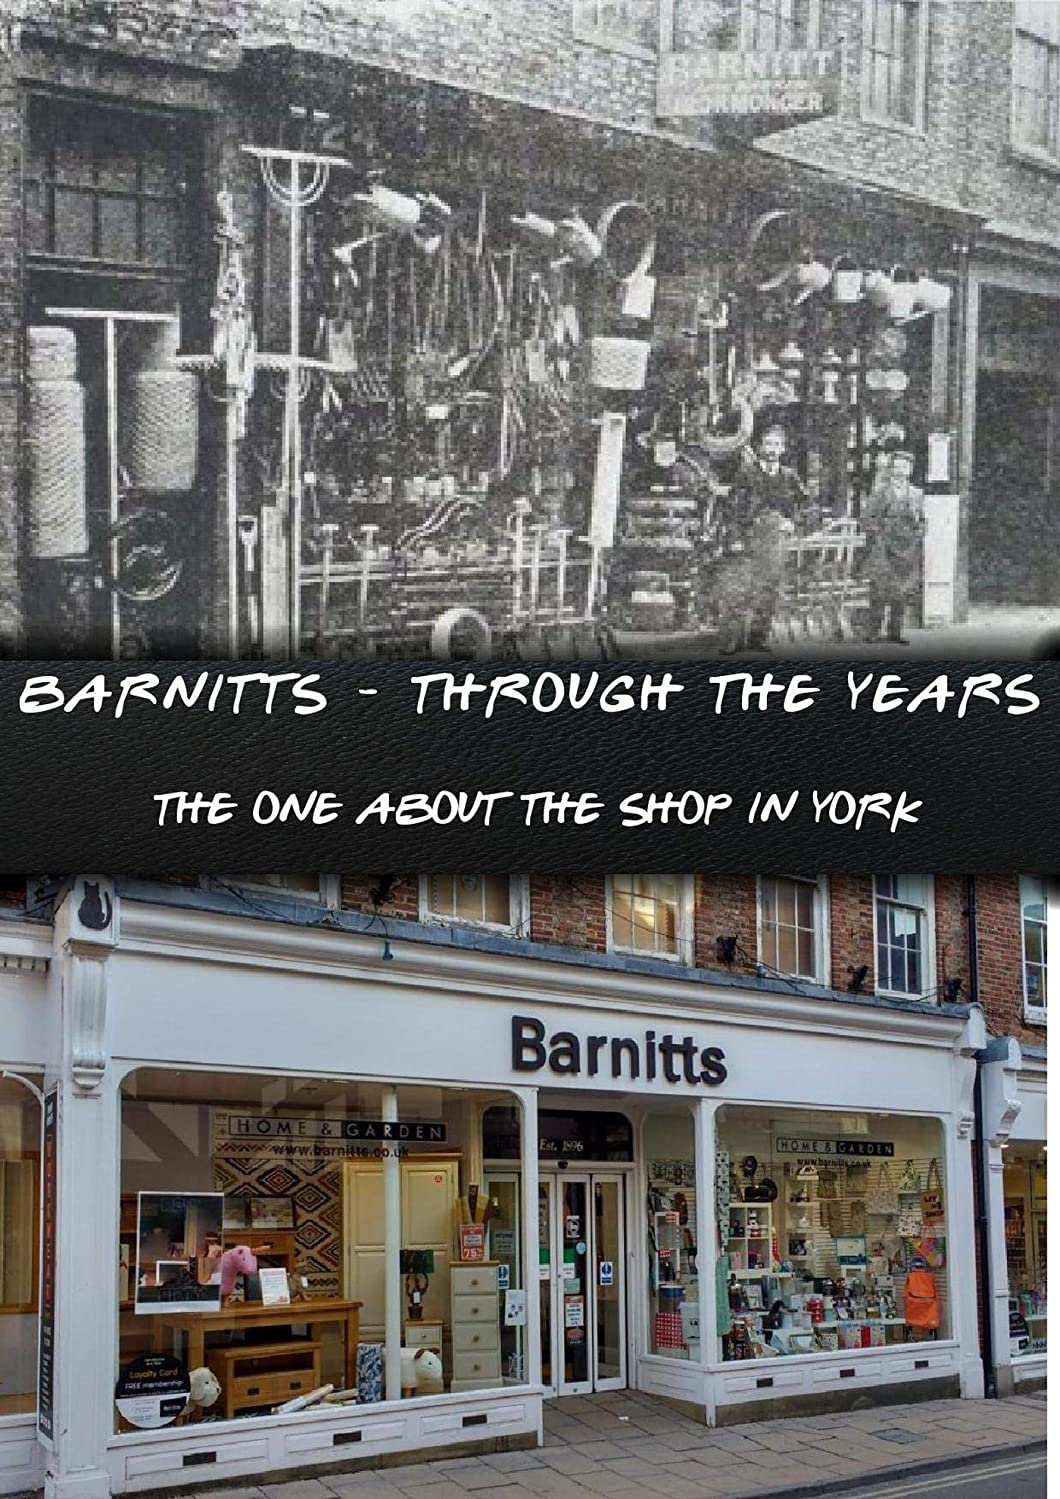 Barnitts - Through The Years. The One About The Shop In York (English Edition)